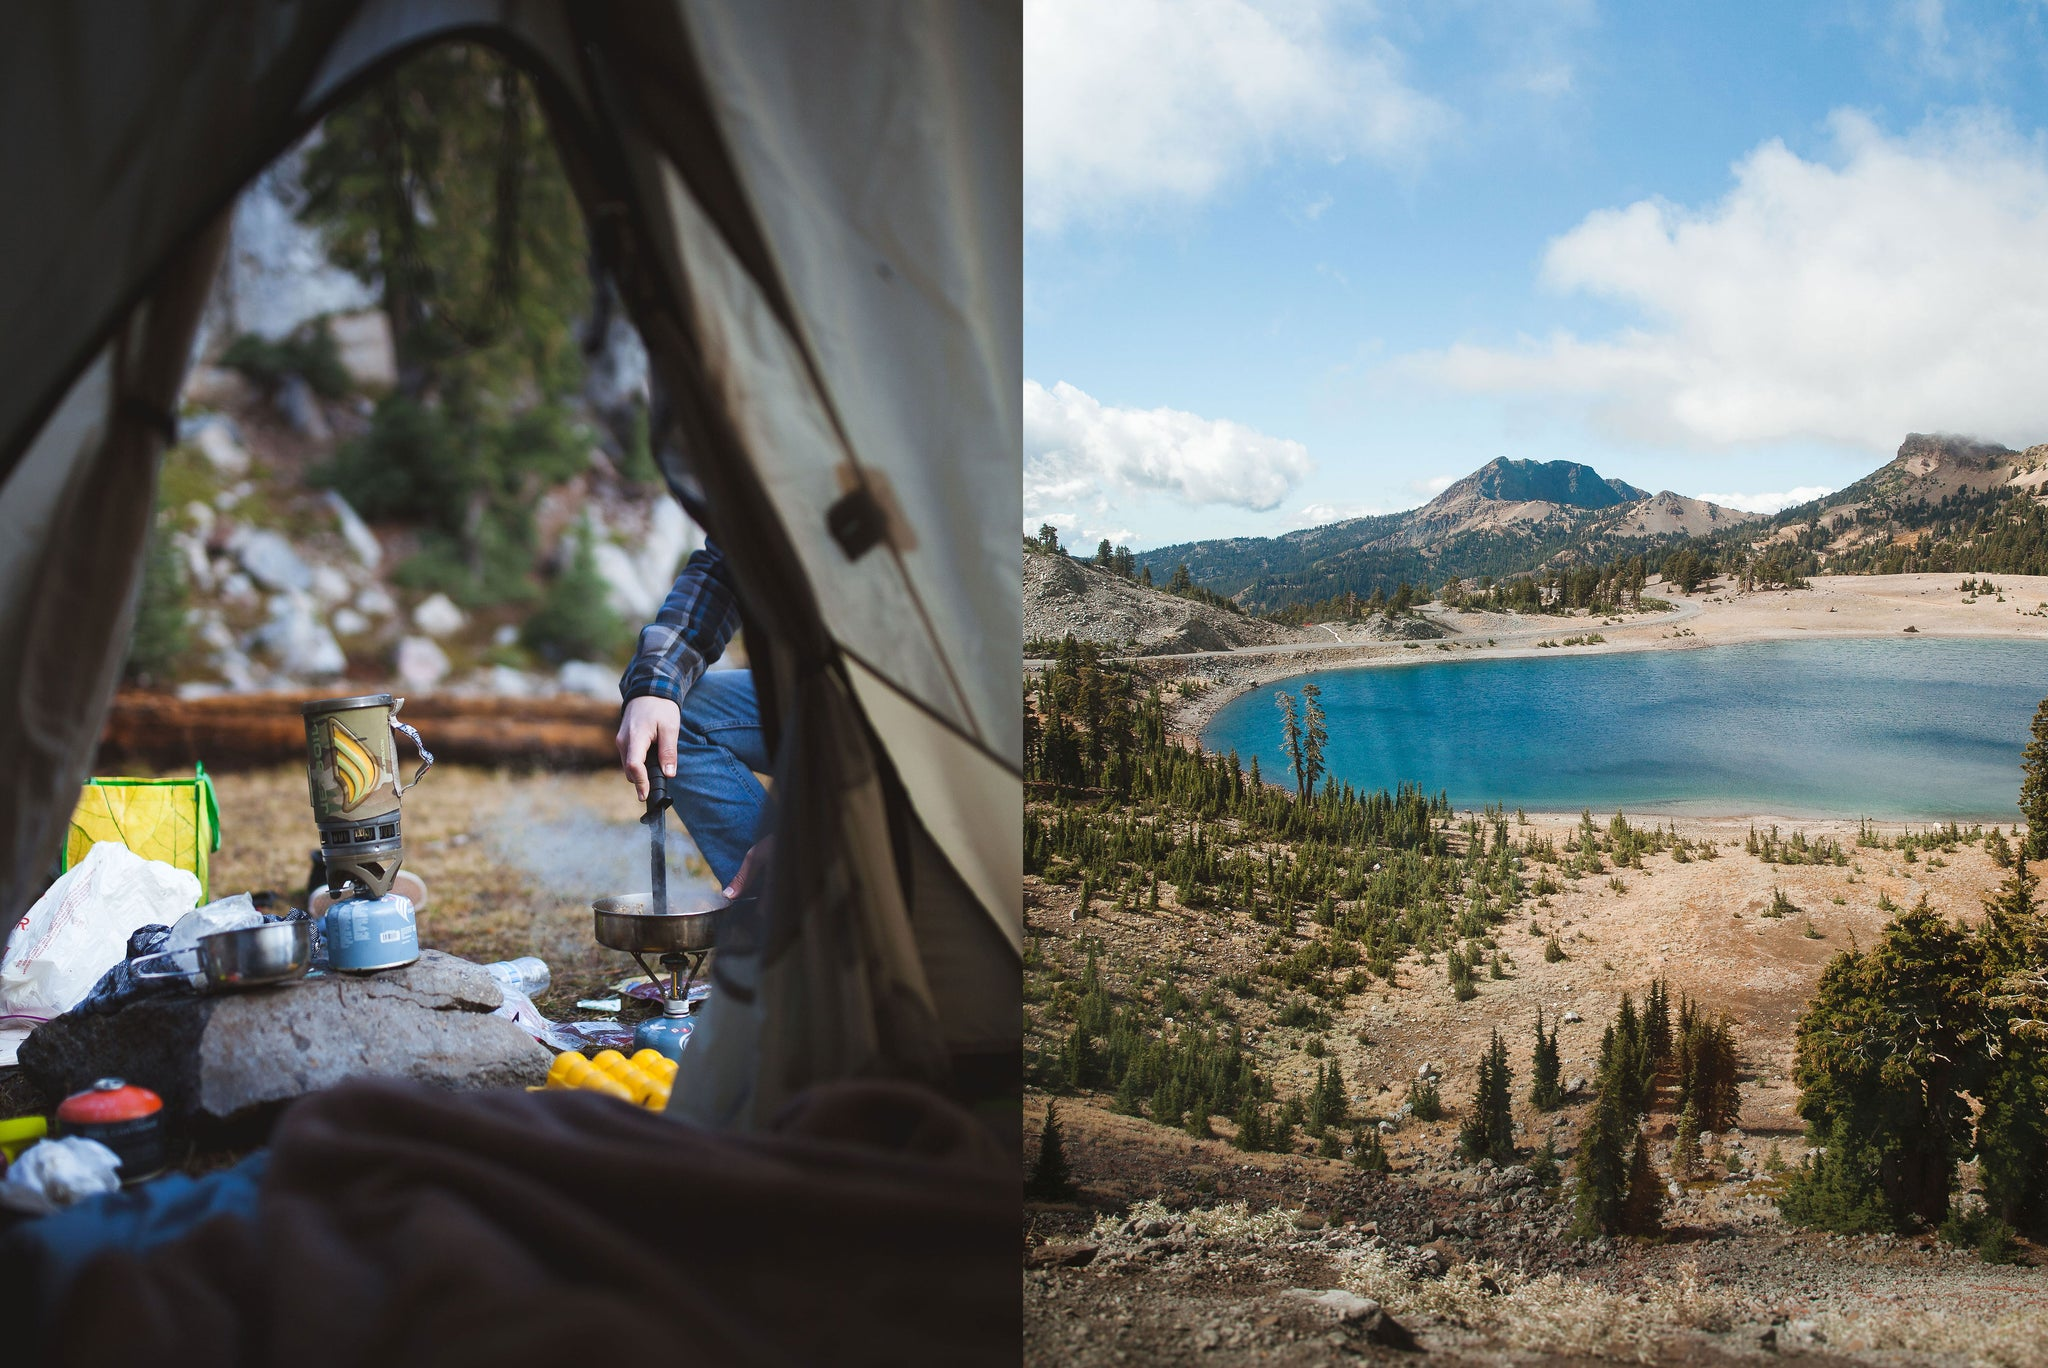 Camping trips in Lassen Park for Bather's Excellent Adventures travel series